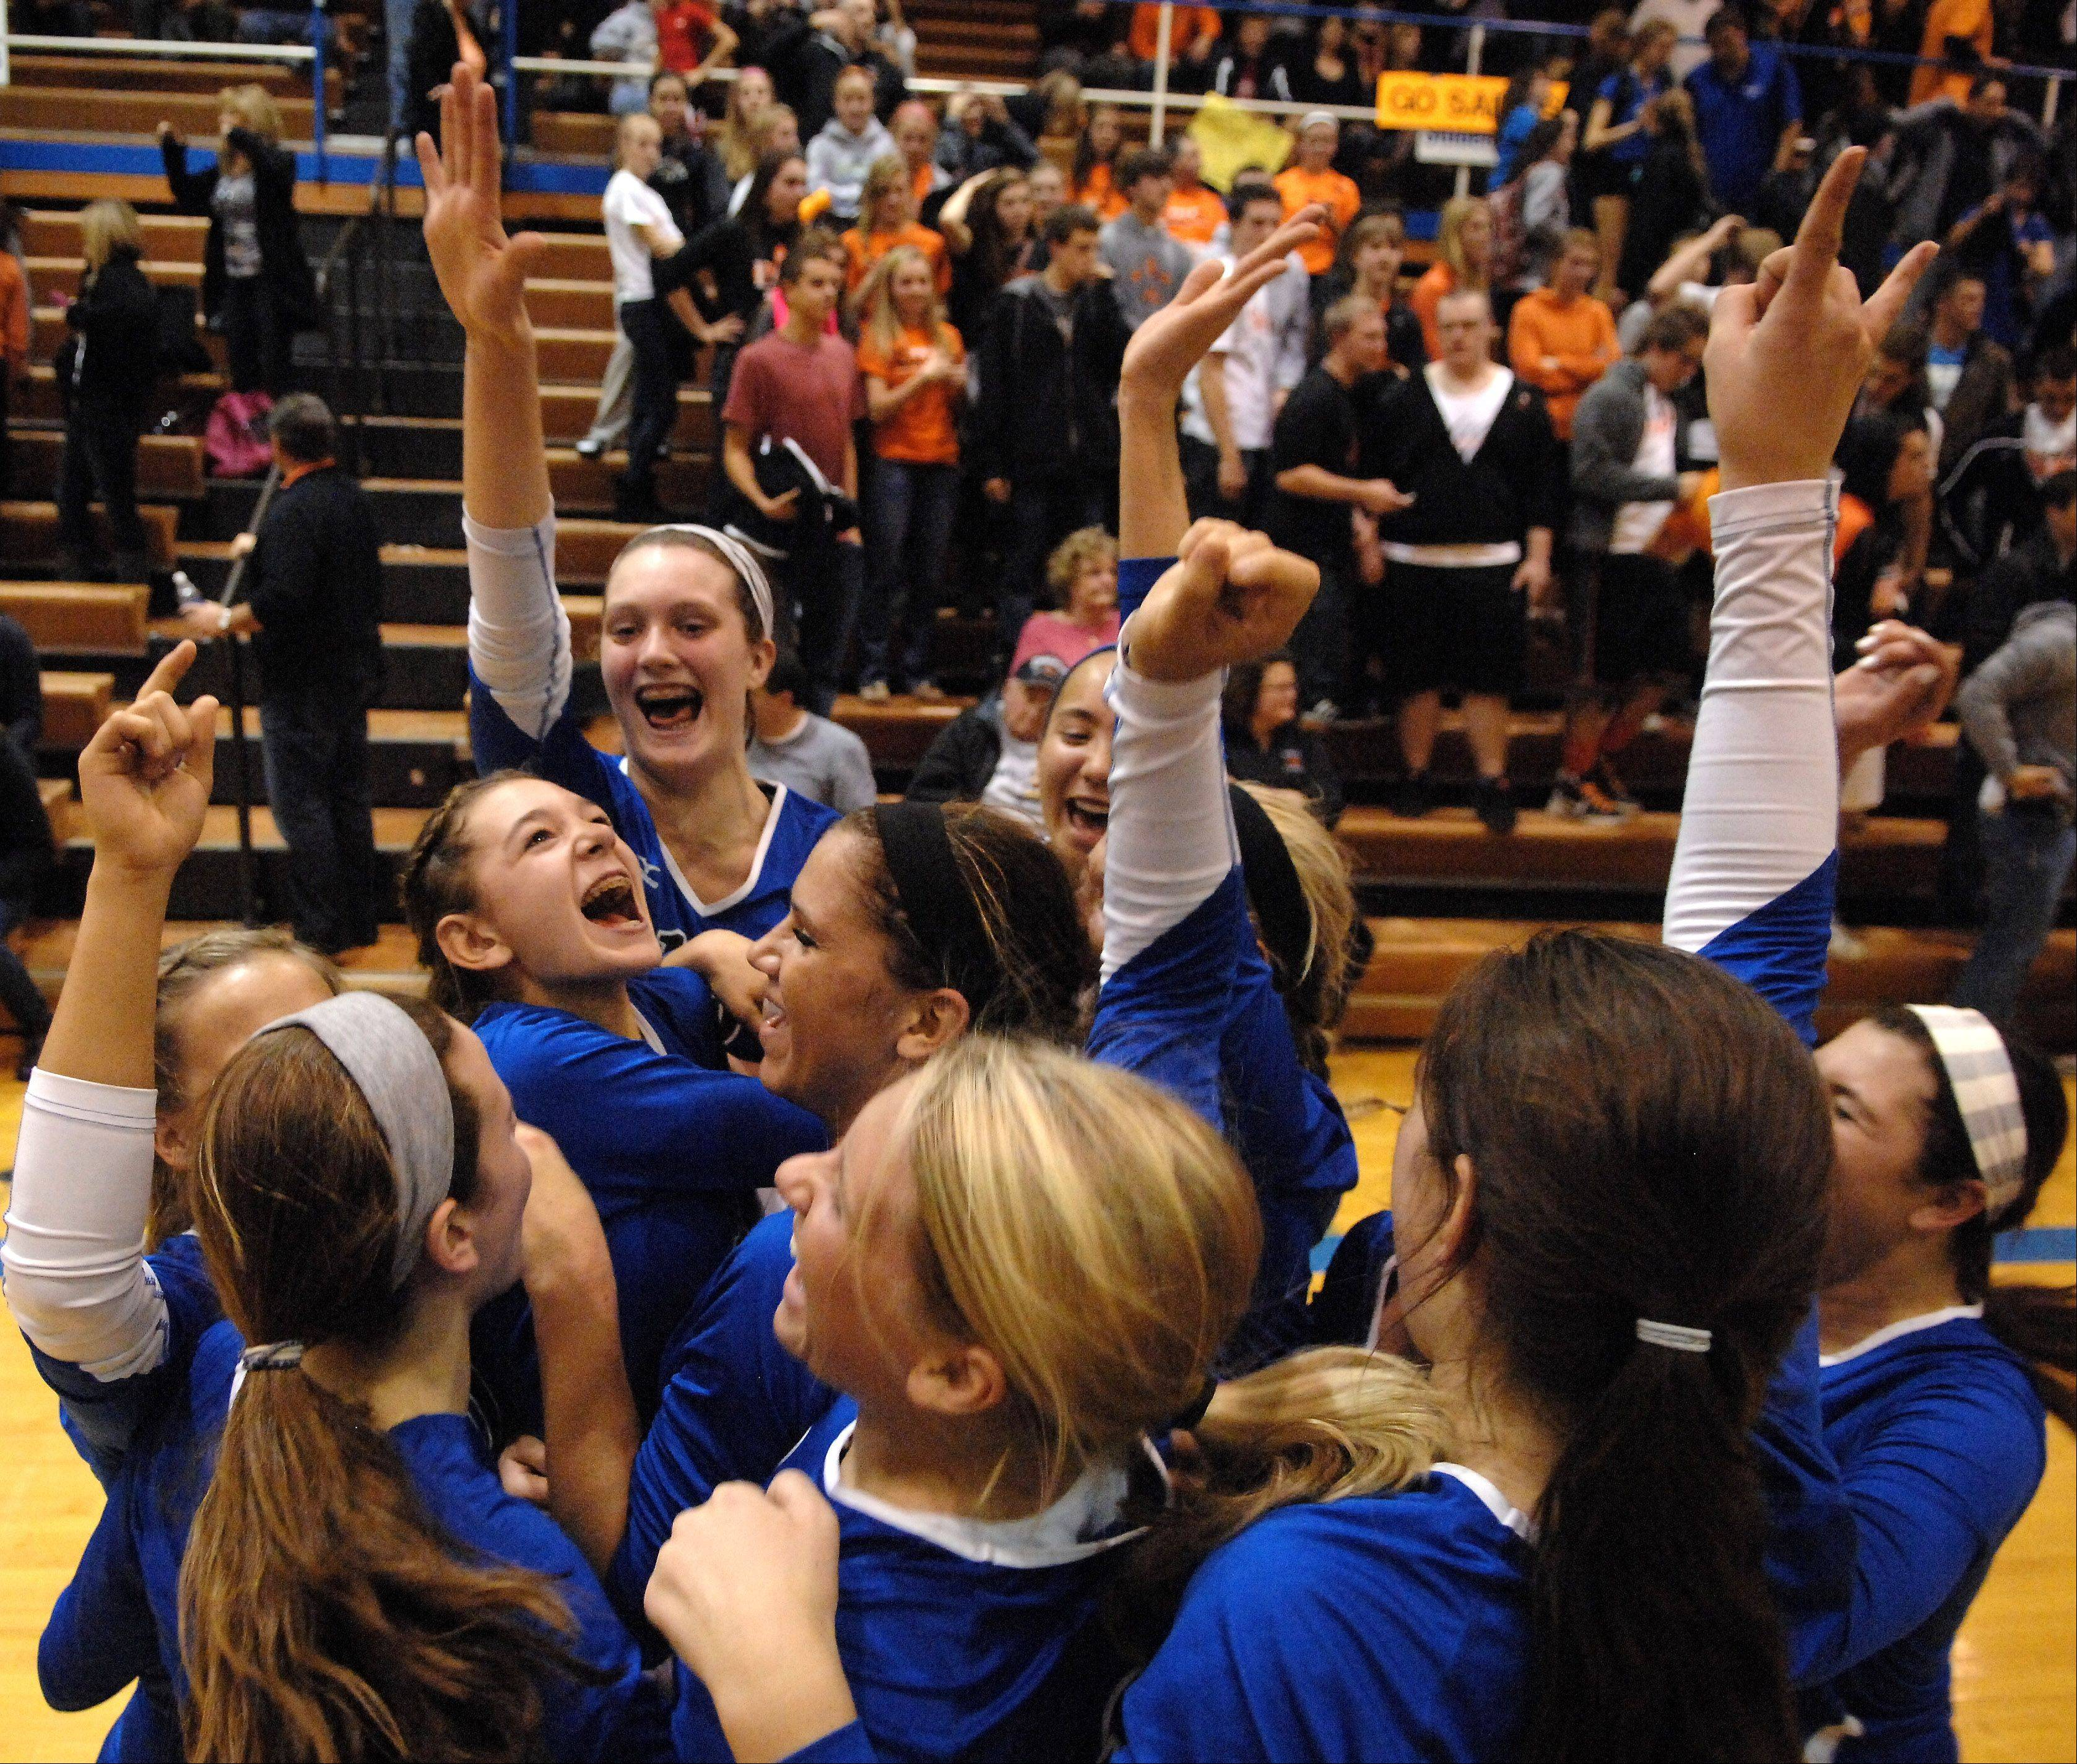 Geneva players celebrate following their victory over St. Charles East during Tuesday's sectional semifinals at Larkin High School in Elgin.